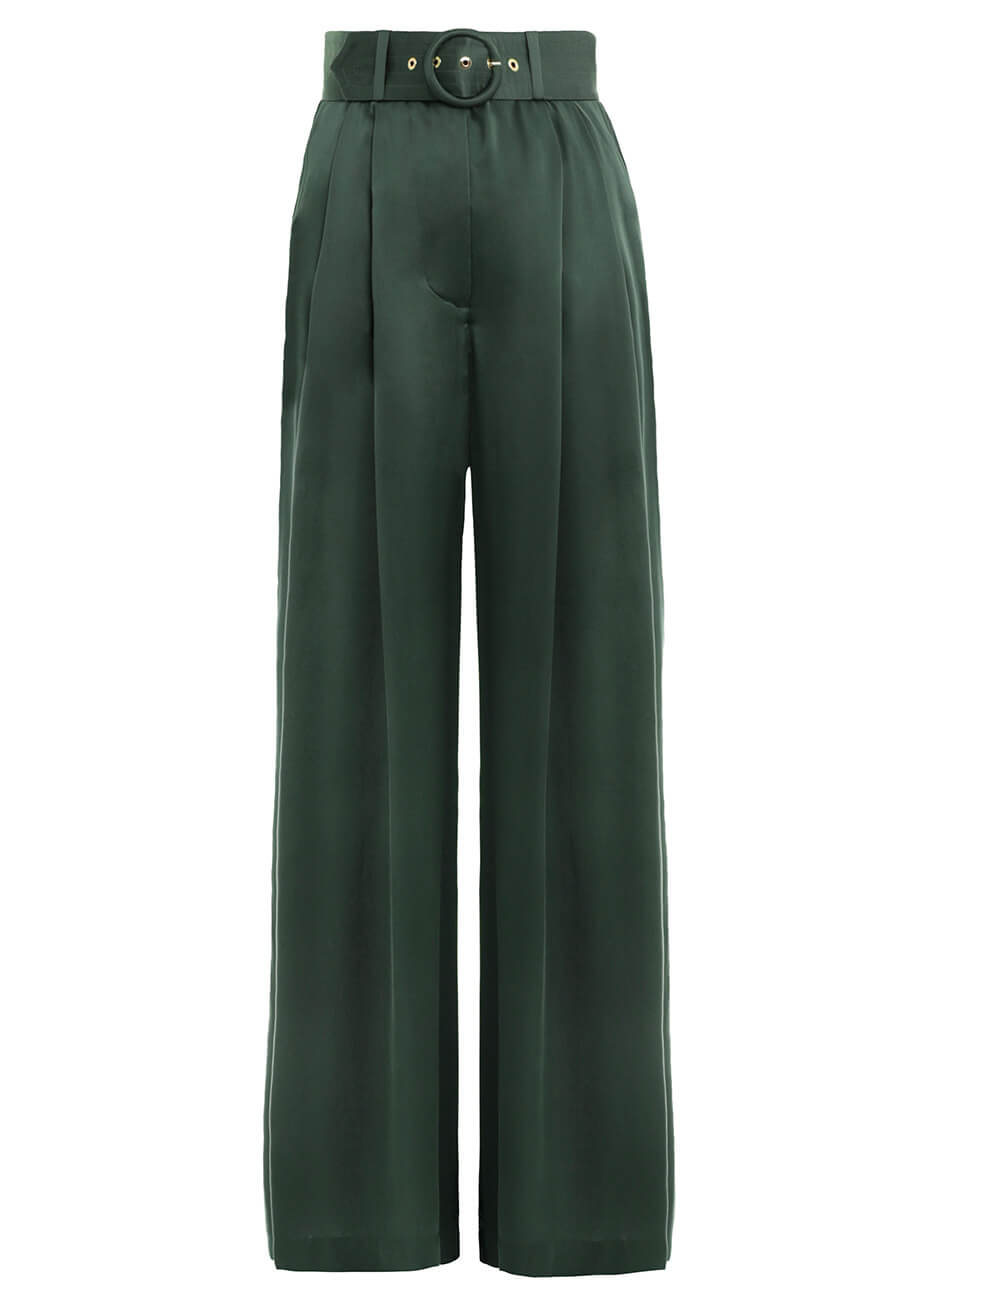 selected material drop shipping limited price Espionage Silk Tuck Pant